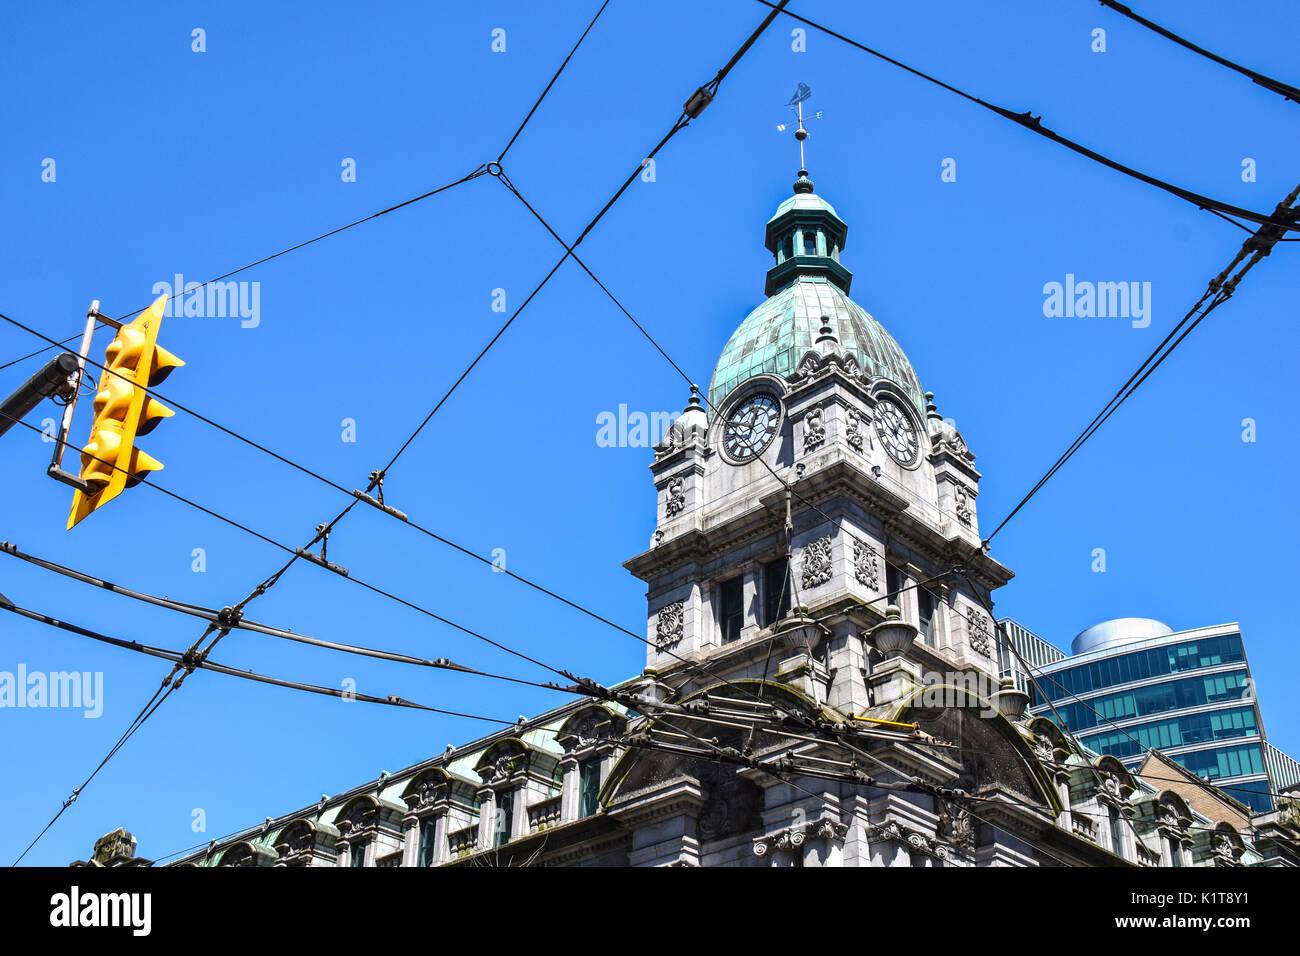 Old main post office building, now part of a shopping mall, and electrical overhead lines for public trolley busses and trams in downtown Vancouver, C - Stock Image